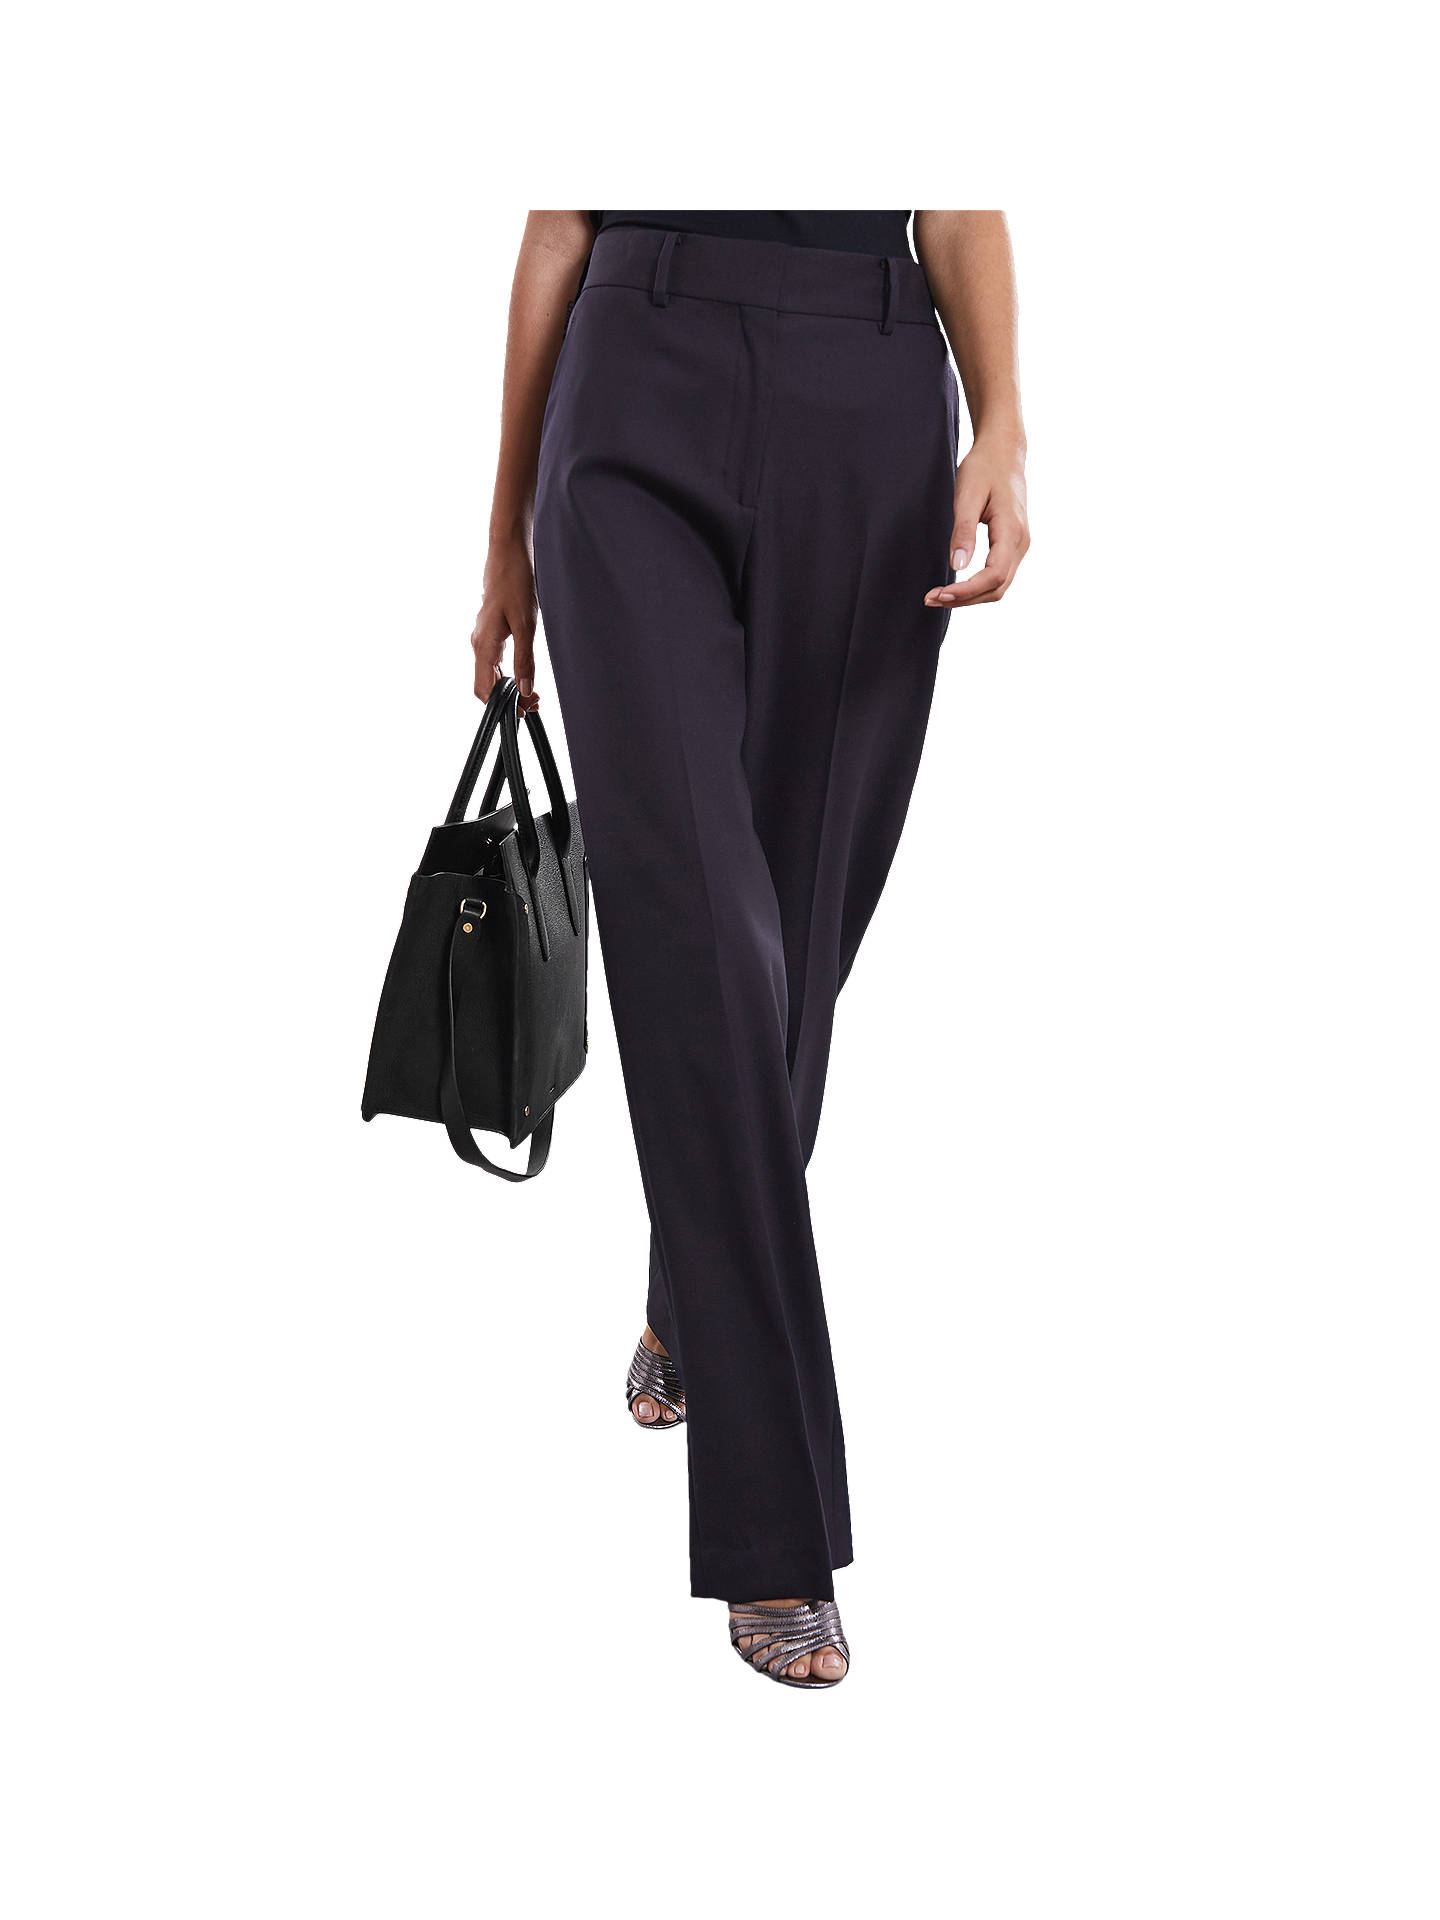 BuyReiss Mila Trousers, Navy, 6 Online at johnlewis.com